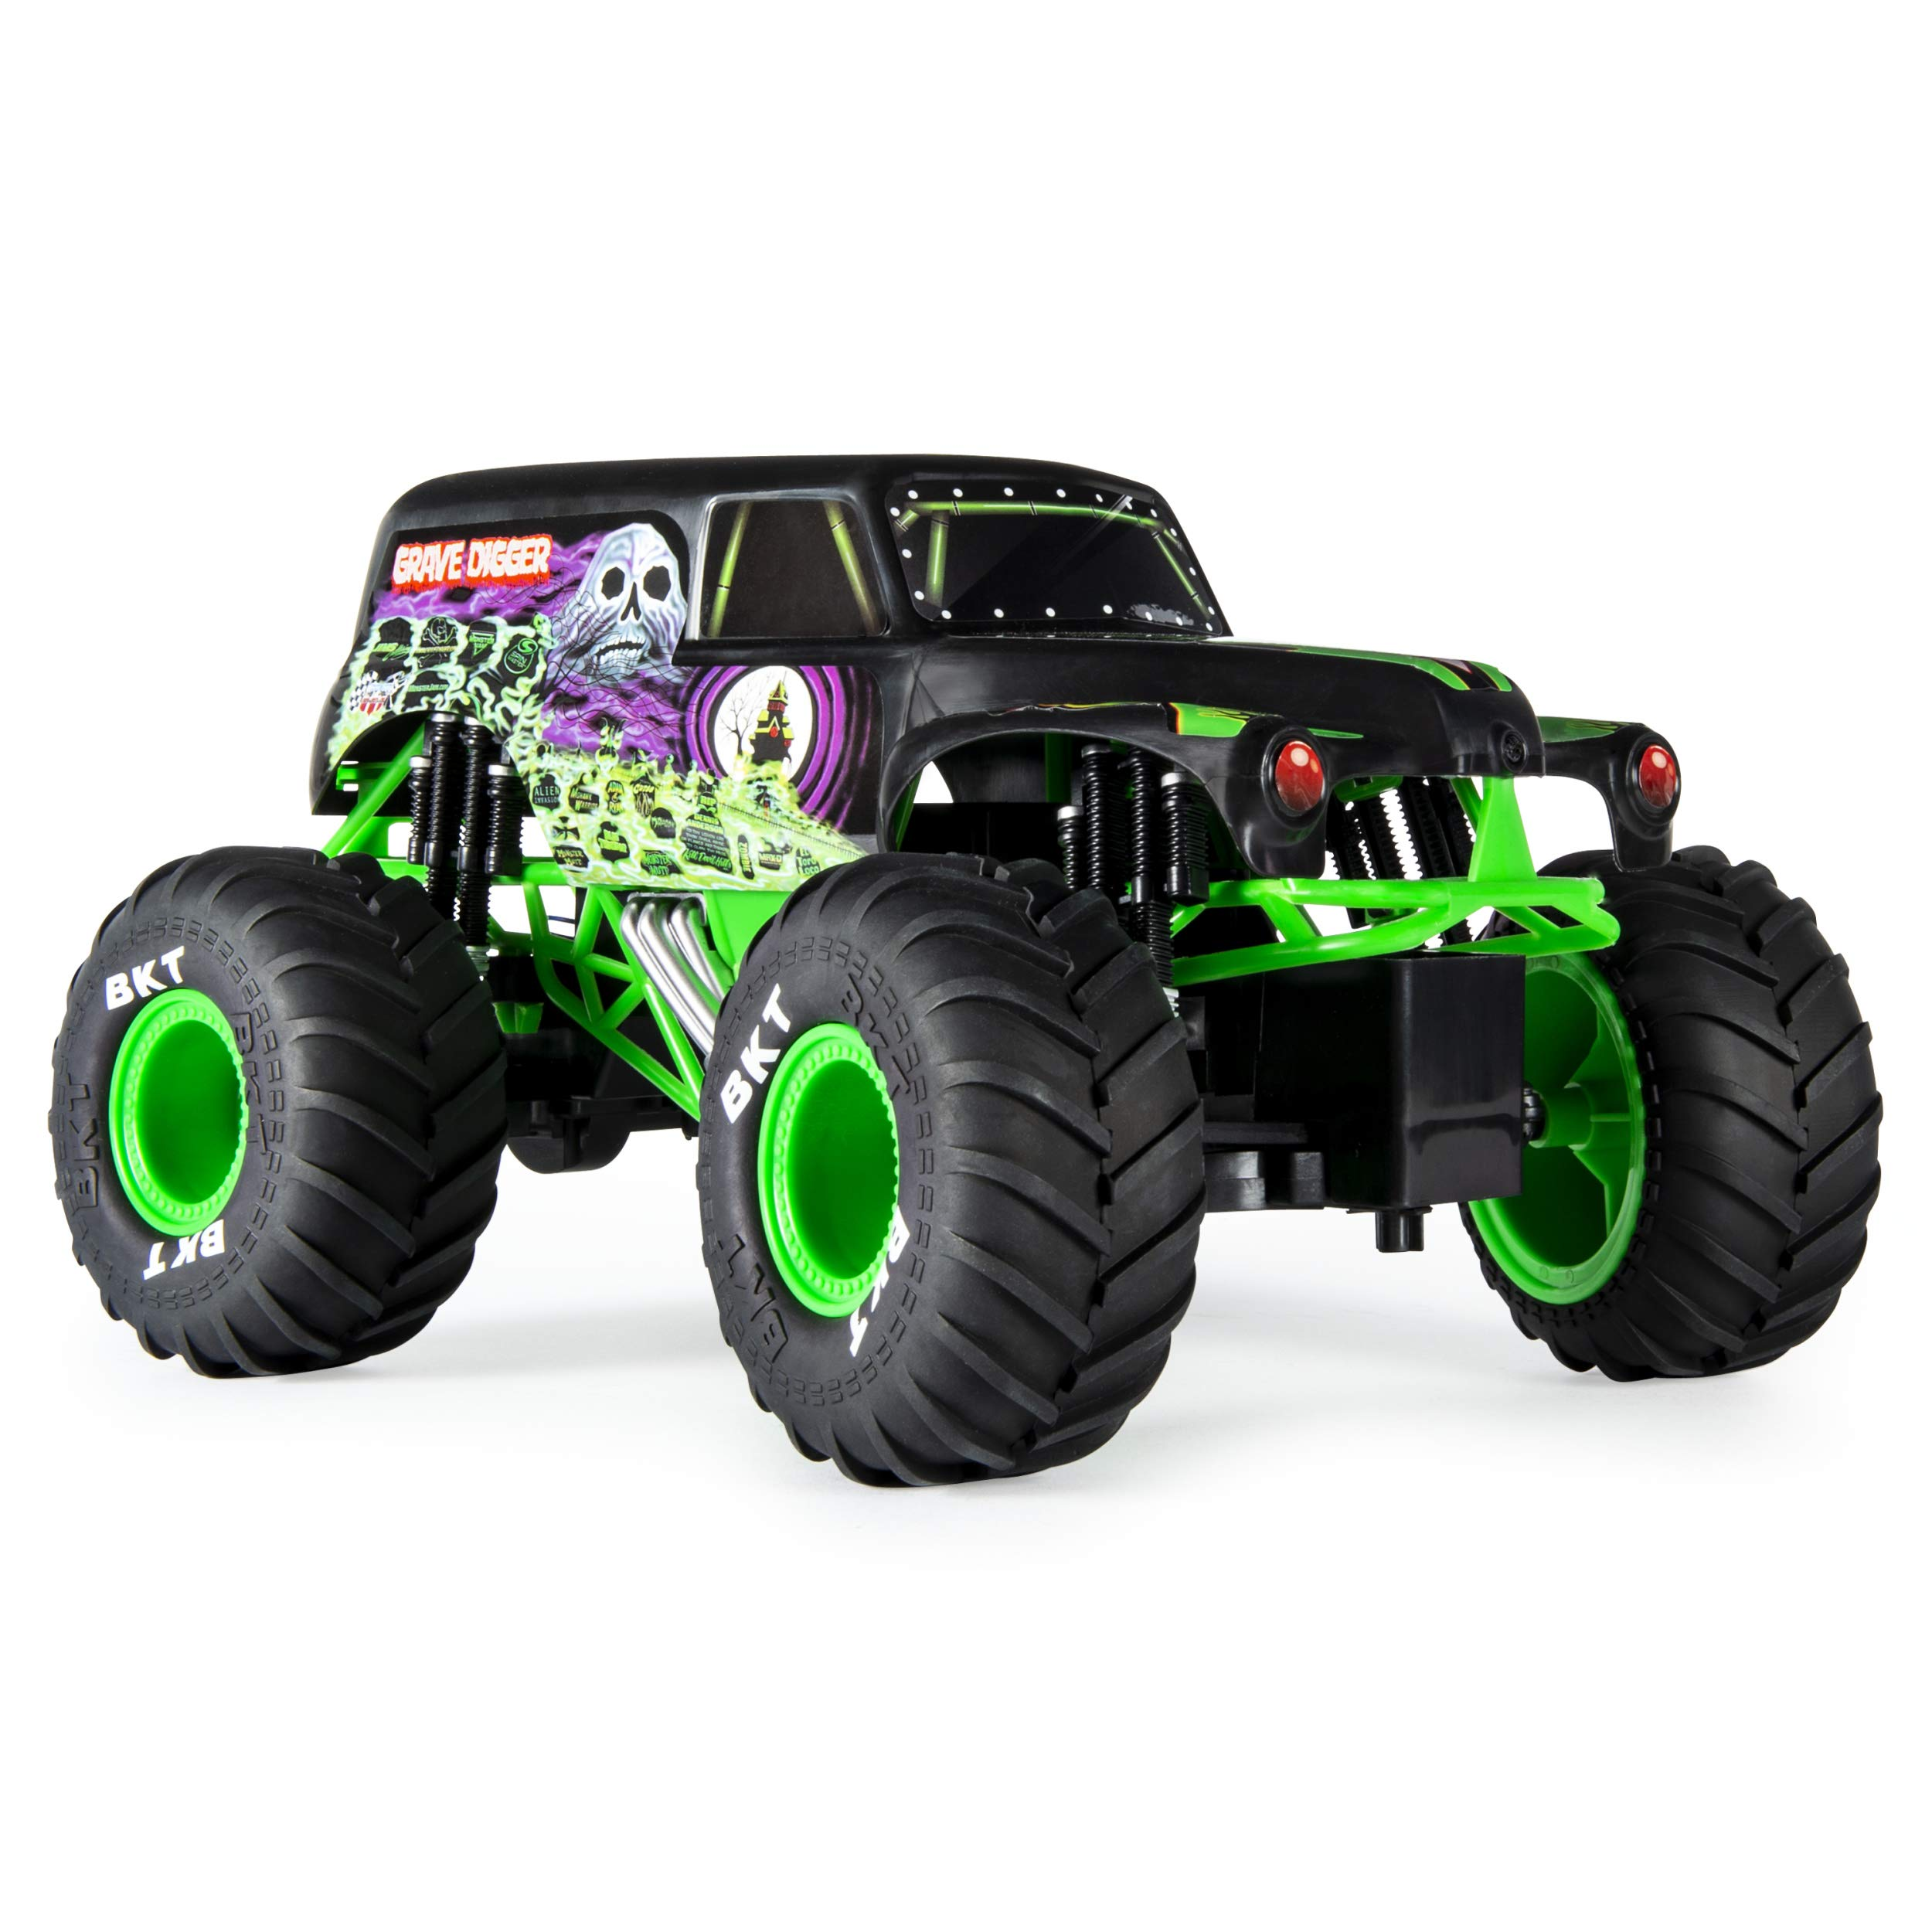 Monster Jam Official Grave Digger Remoter Control Monster Truck, 1: 15 Scale, 2.4Ghz by Monster Jam (Image #8)